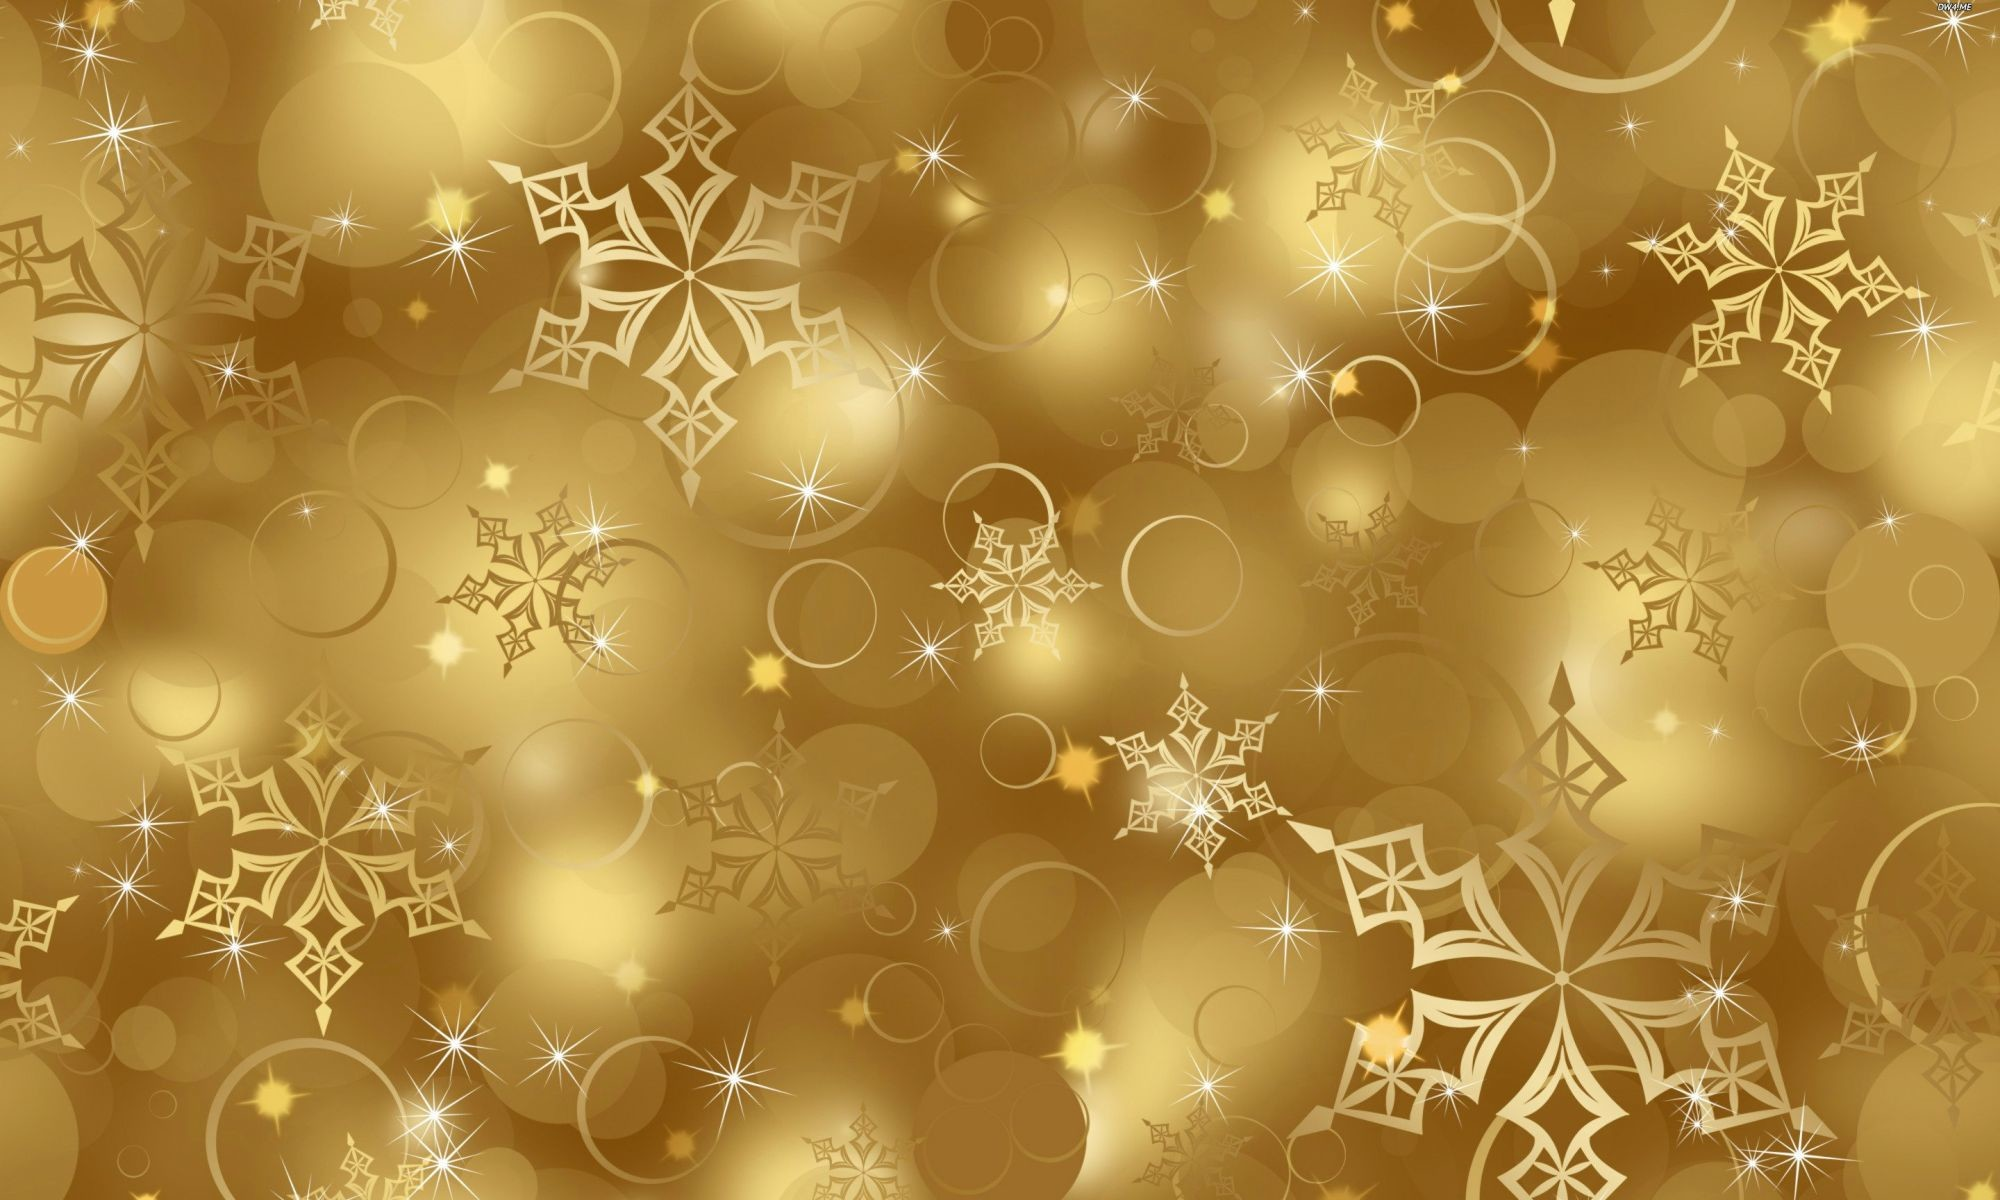 Res: 2000x1200, Gold Sparkle iPhone Backgrounds Hd Golden Wallpapers Wonderful Hdq Golden  Pictures Wonderful 44 Hq